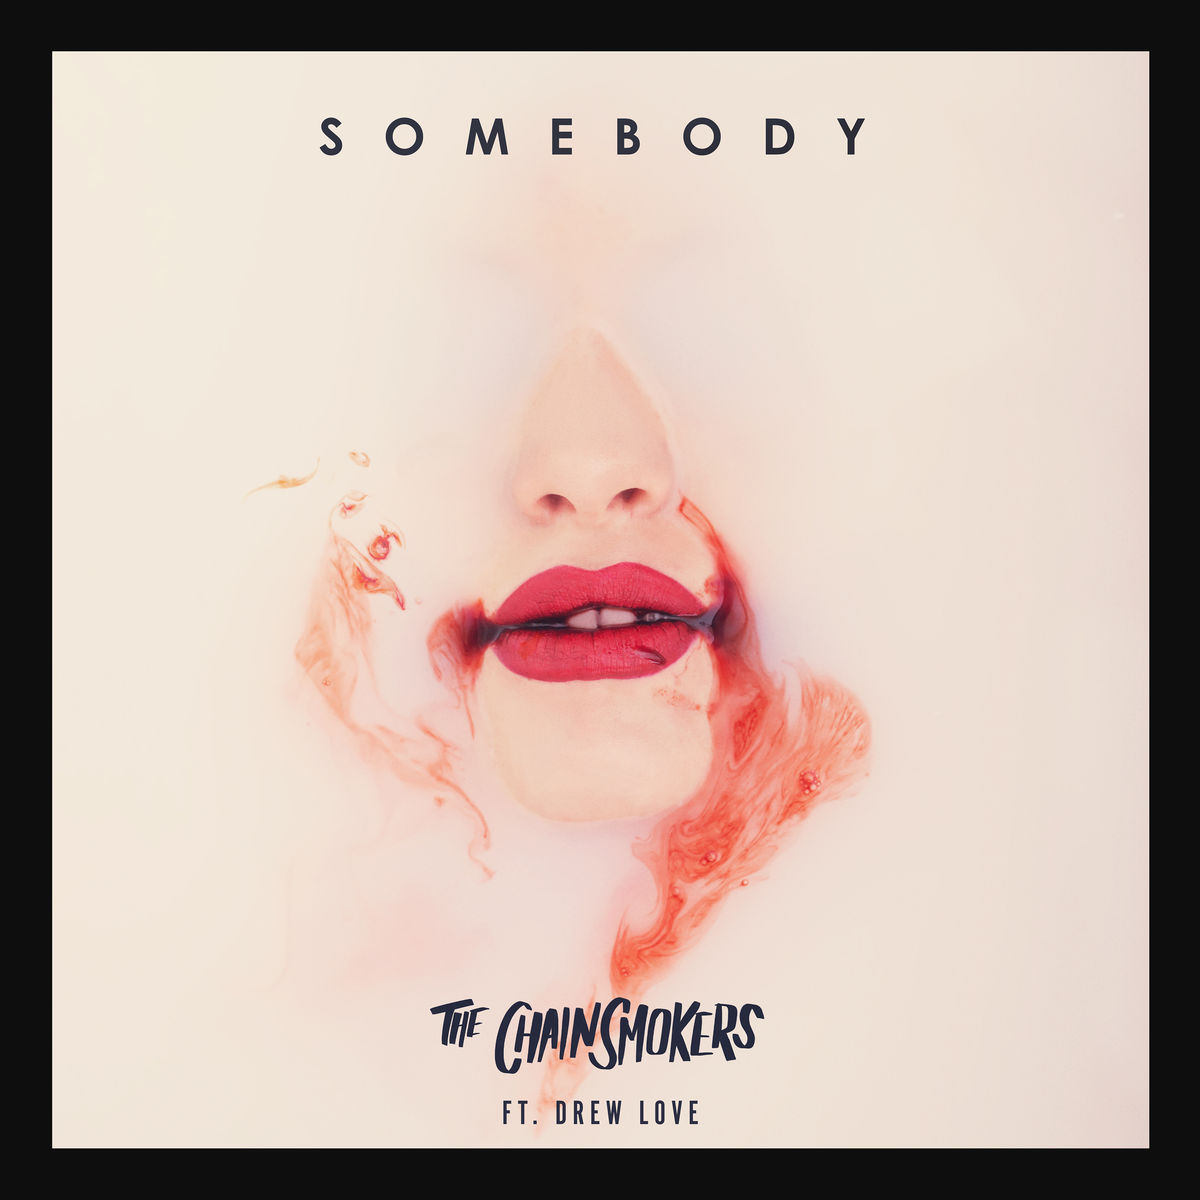 THE CHAINSMOKERS FEAT. DREW LOVE - Somebody (Columbia/Sony)